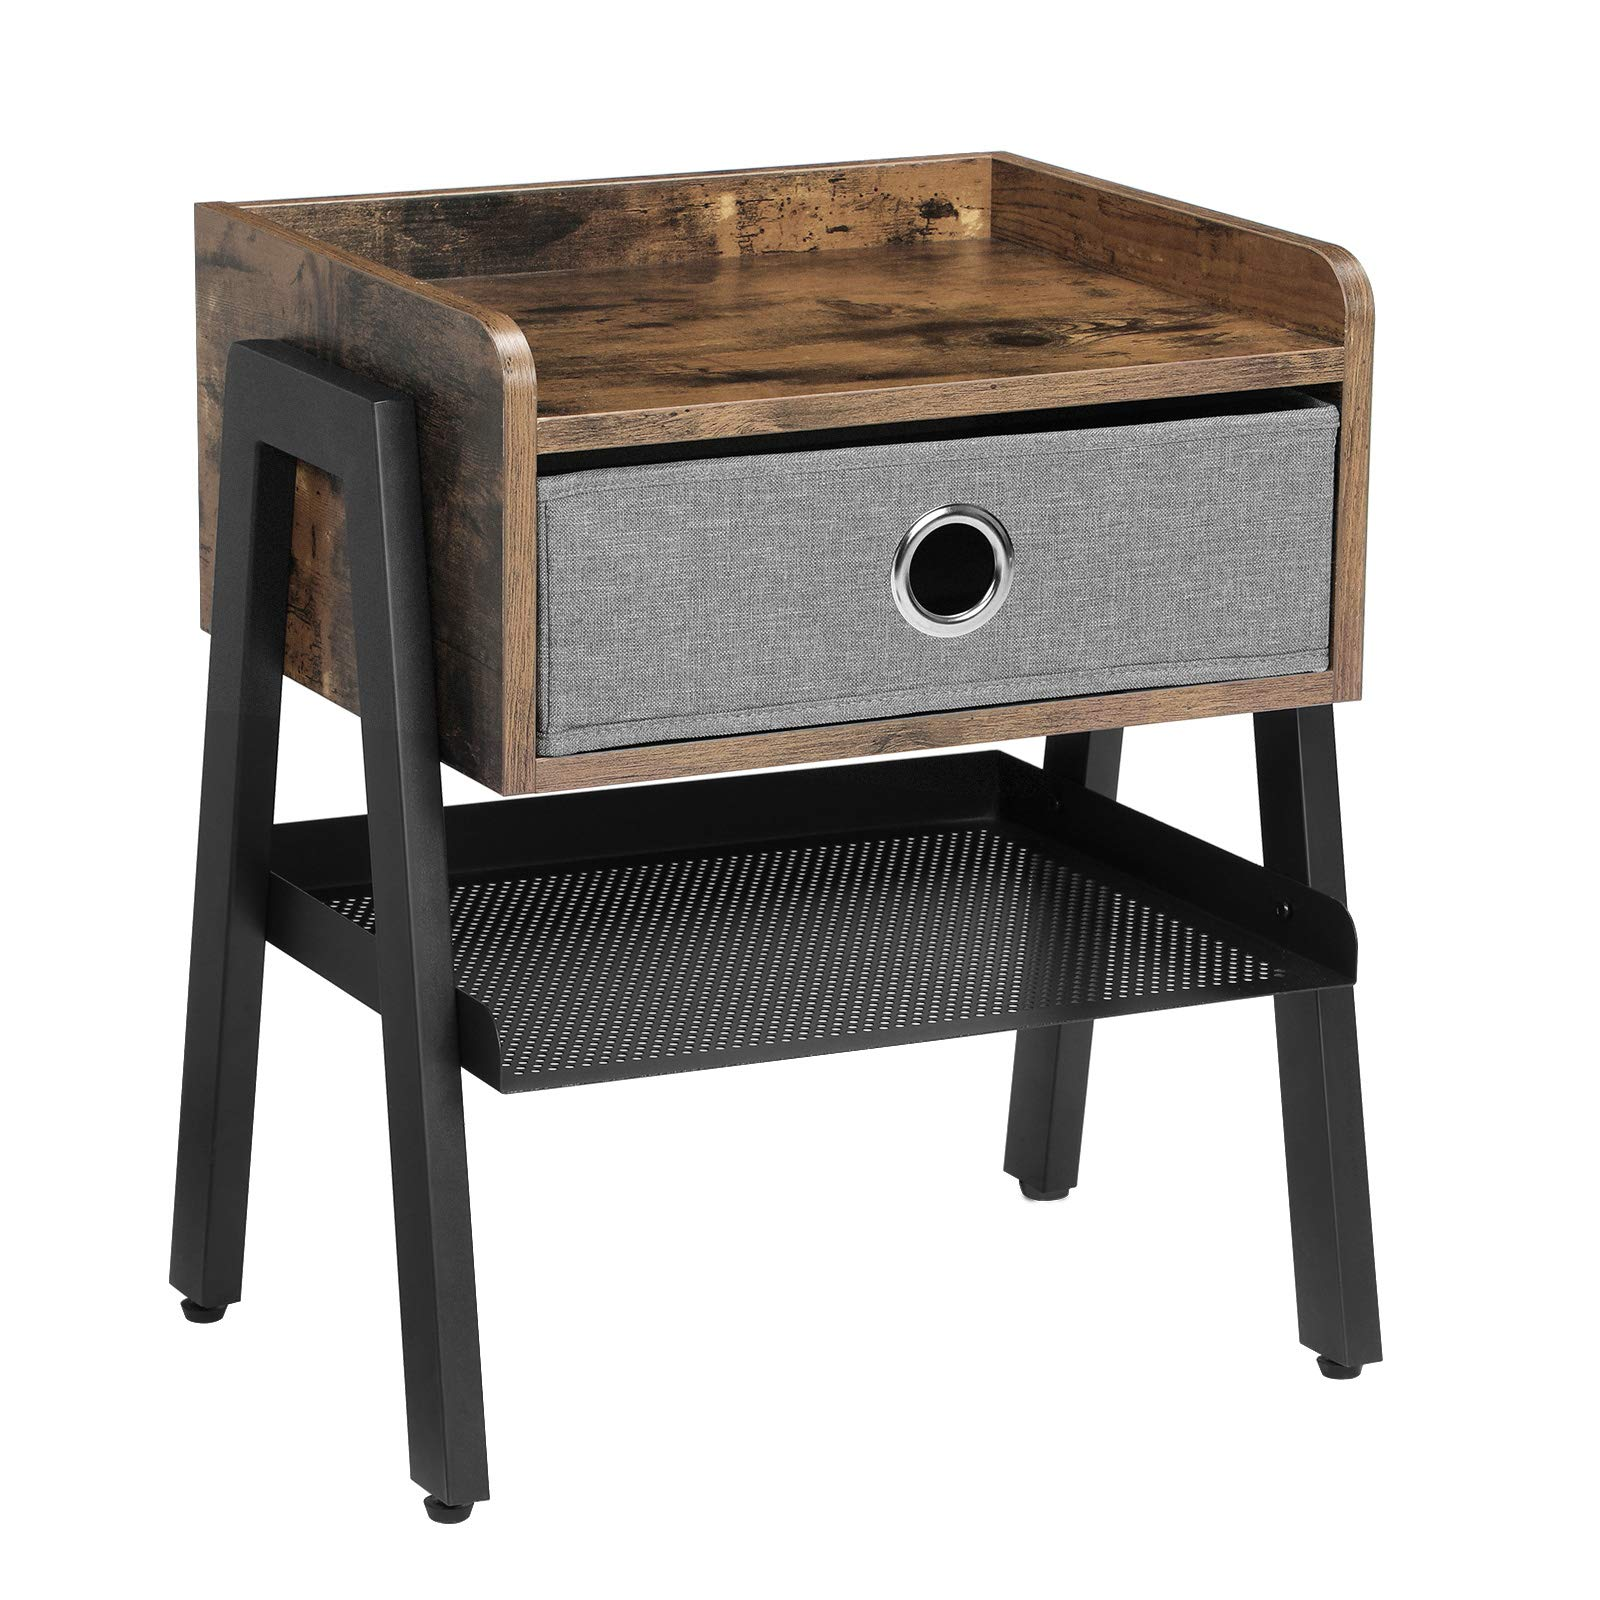 VASAGLE Industrial Nightstand, End Table with Metal Shelf, Side Table for Small Spaces, Wood Look Accent Furniture with Metal Frame ULET64X by VASAGLE